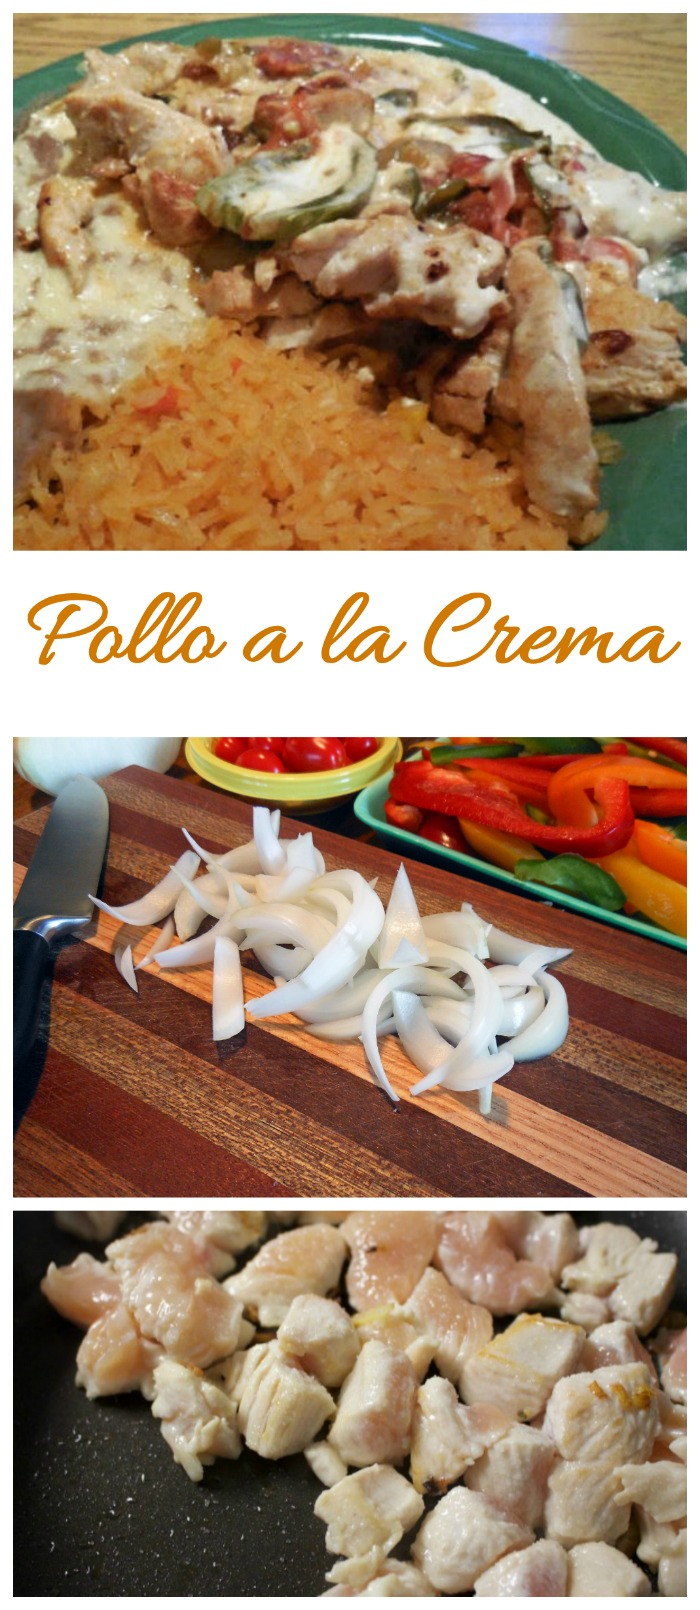 Pollo a la crema is one of my favorite Mexican meals. It is creamy and spicy and super easy to make.